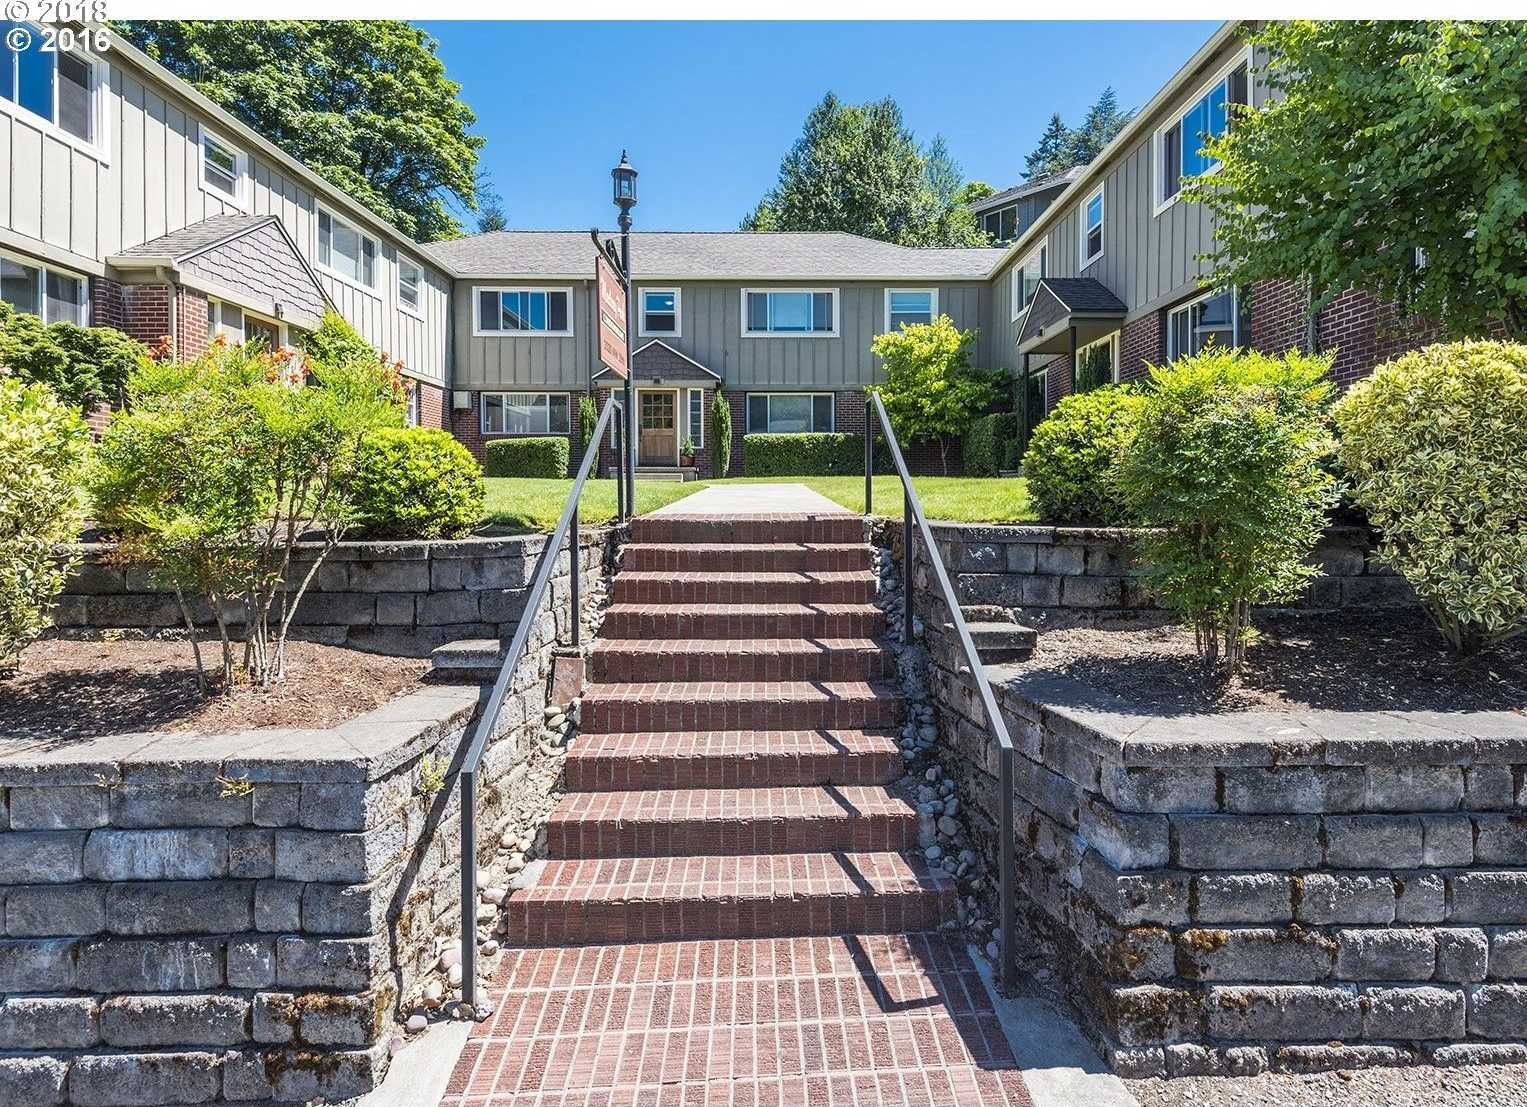 $295,000 - 1Br/1Ba -  for Sale in Nob Hill, Portland